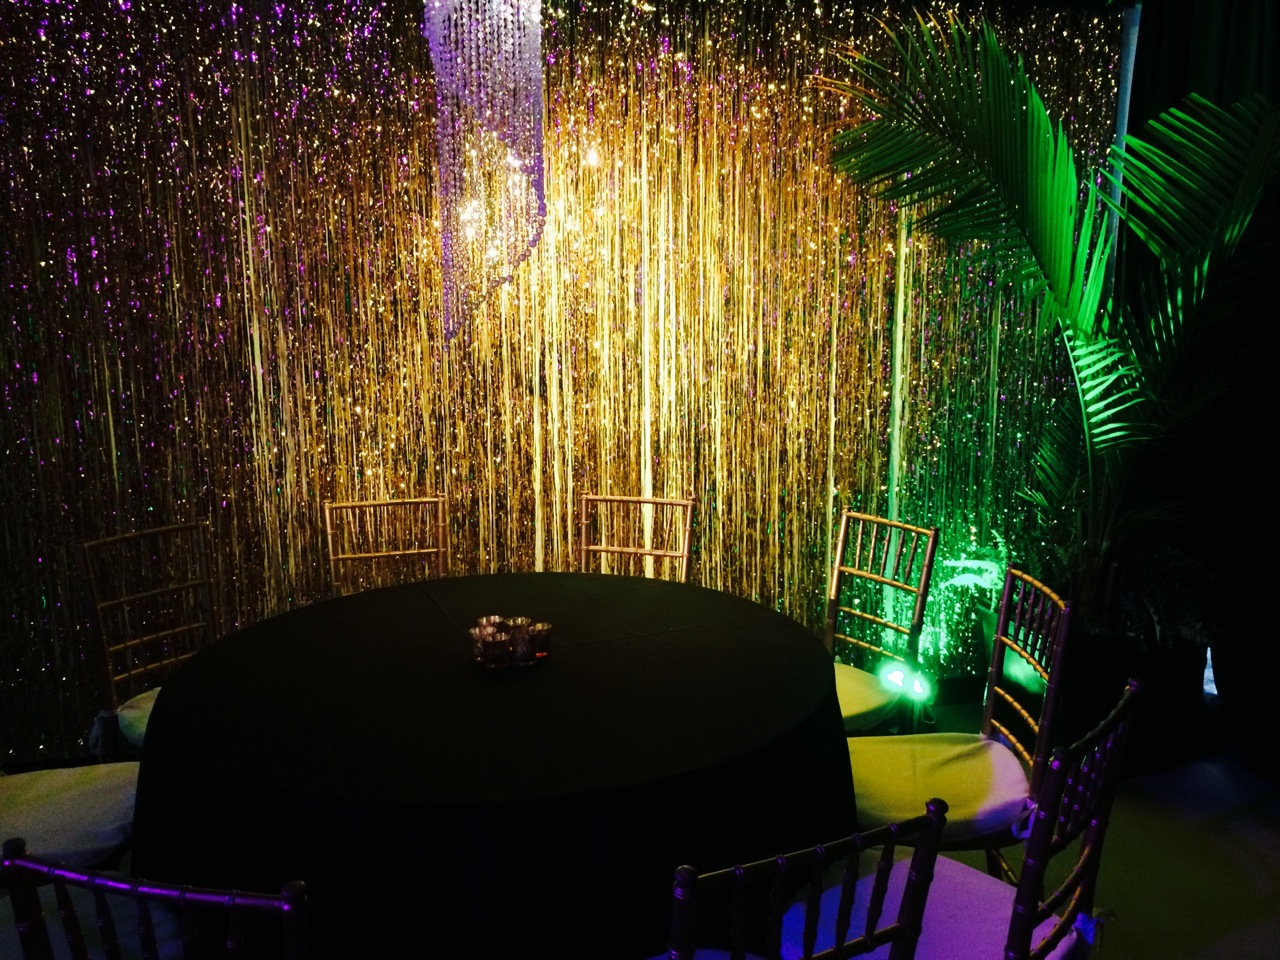 Great Gatsby Theme - Eggsotic Events NJ NYC Event Decor Design Lighting Room Transformation Art Deco Speakeasy The Great Gatsby Decorations and Lighting 8.jpg